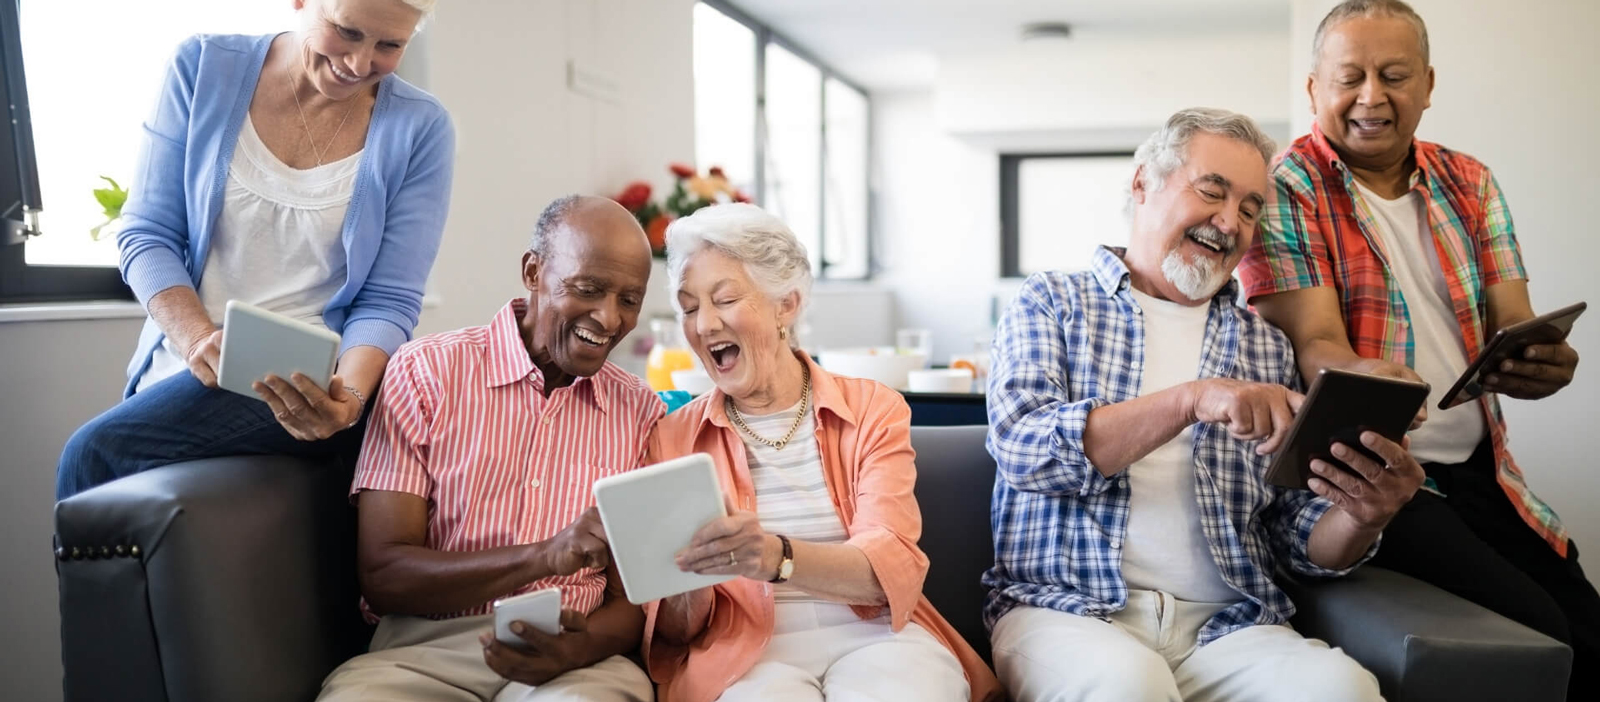 HealthWise Coaches Help Older Adults Use Technology to Connect With Family, Friends, and Healthcare